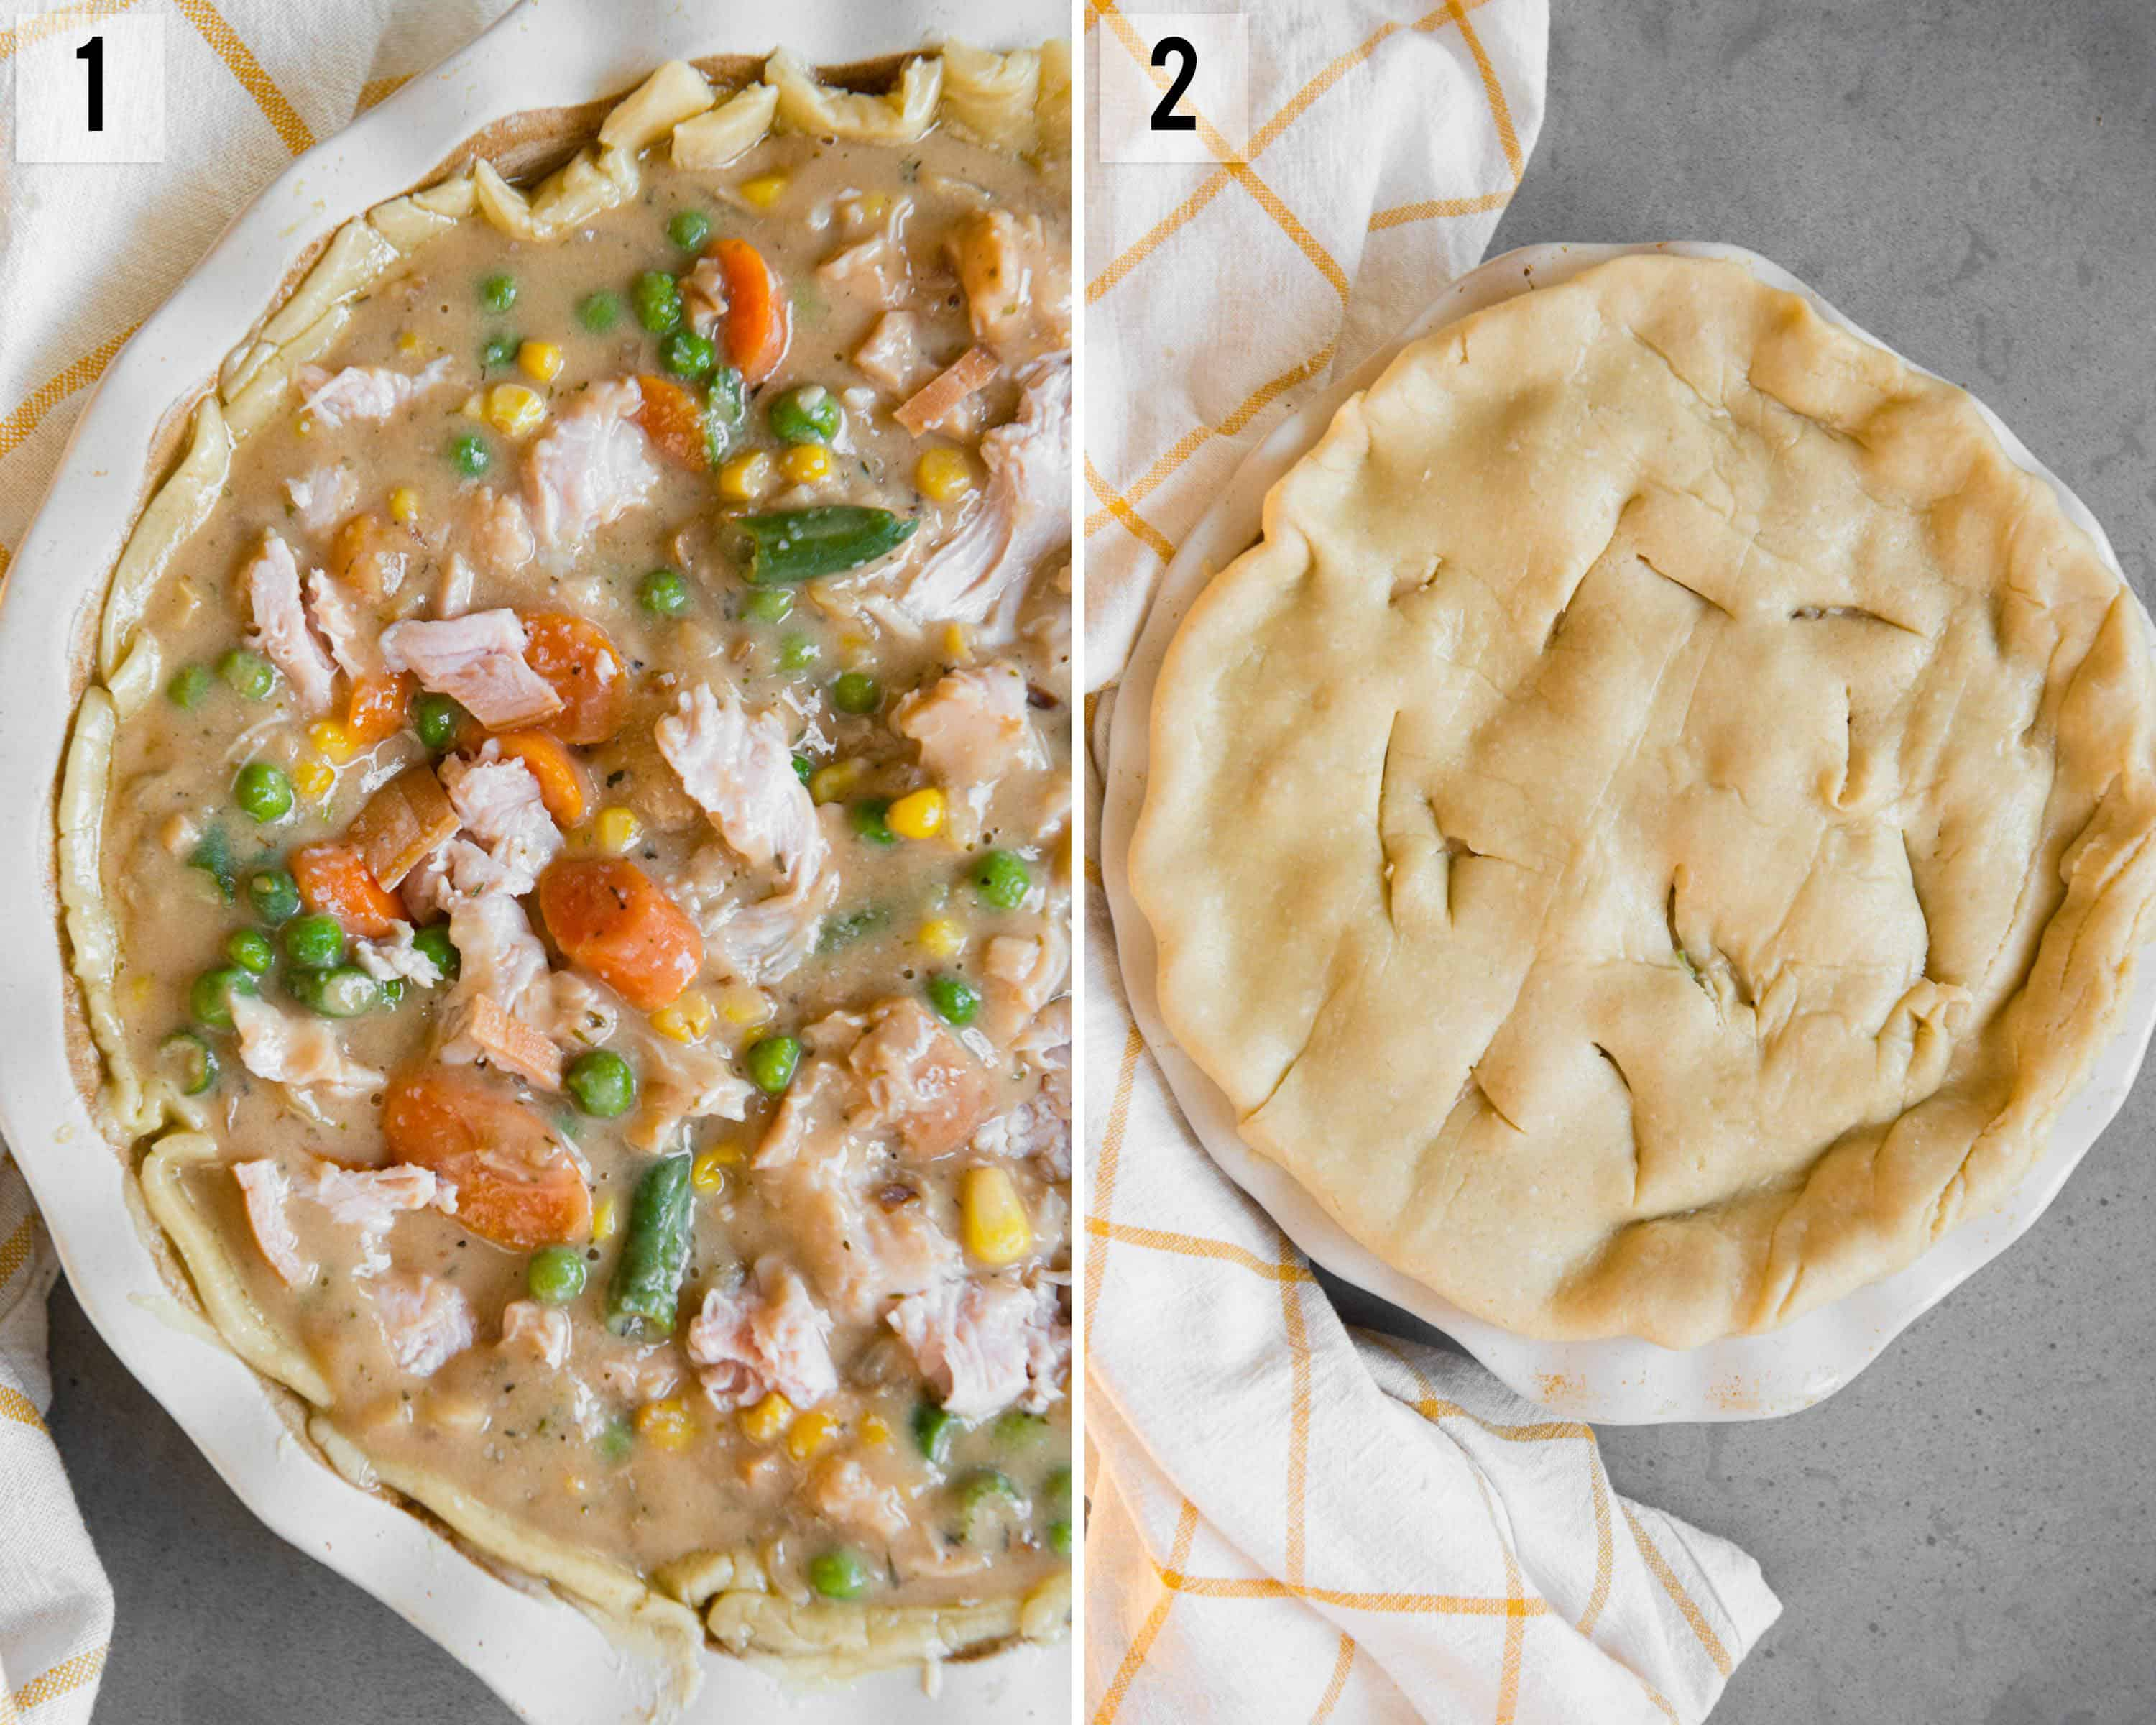 step by step instructions on how to make Turkey Pot Pie